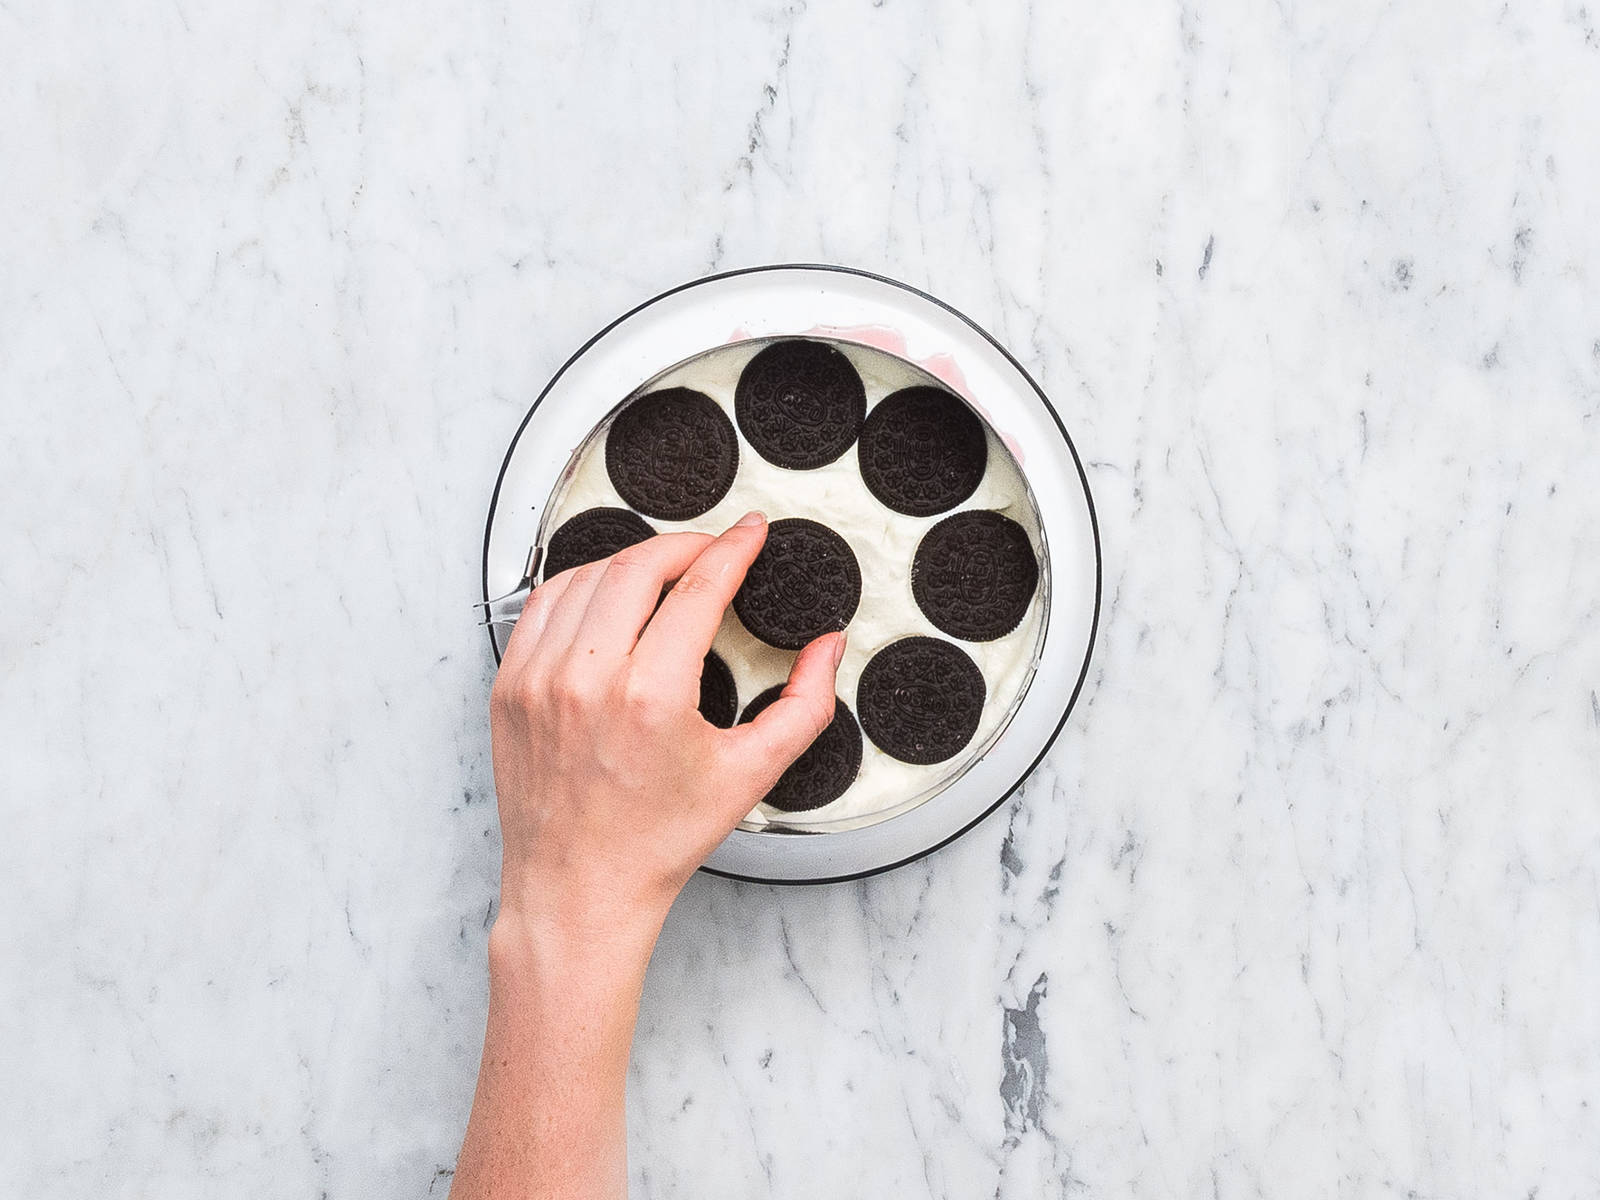 Place the cake ring on a cake plate and begin to assemble the cake. First, add a layer of cookies, then the pink cream, cookies, white cream. Repeat until all is used up. Use a rubber spatula to even out the layers. Place in the freezer to chill for approx. 8 hrs.